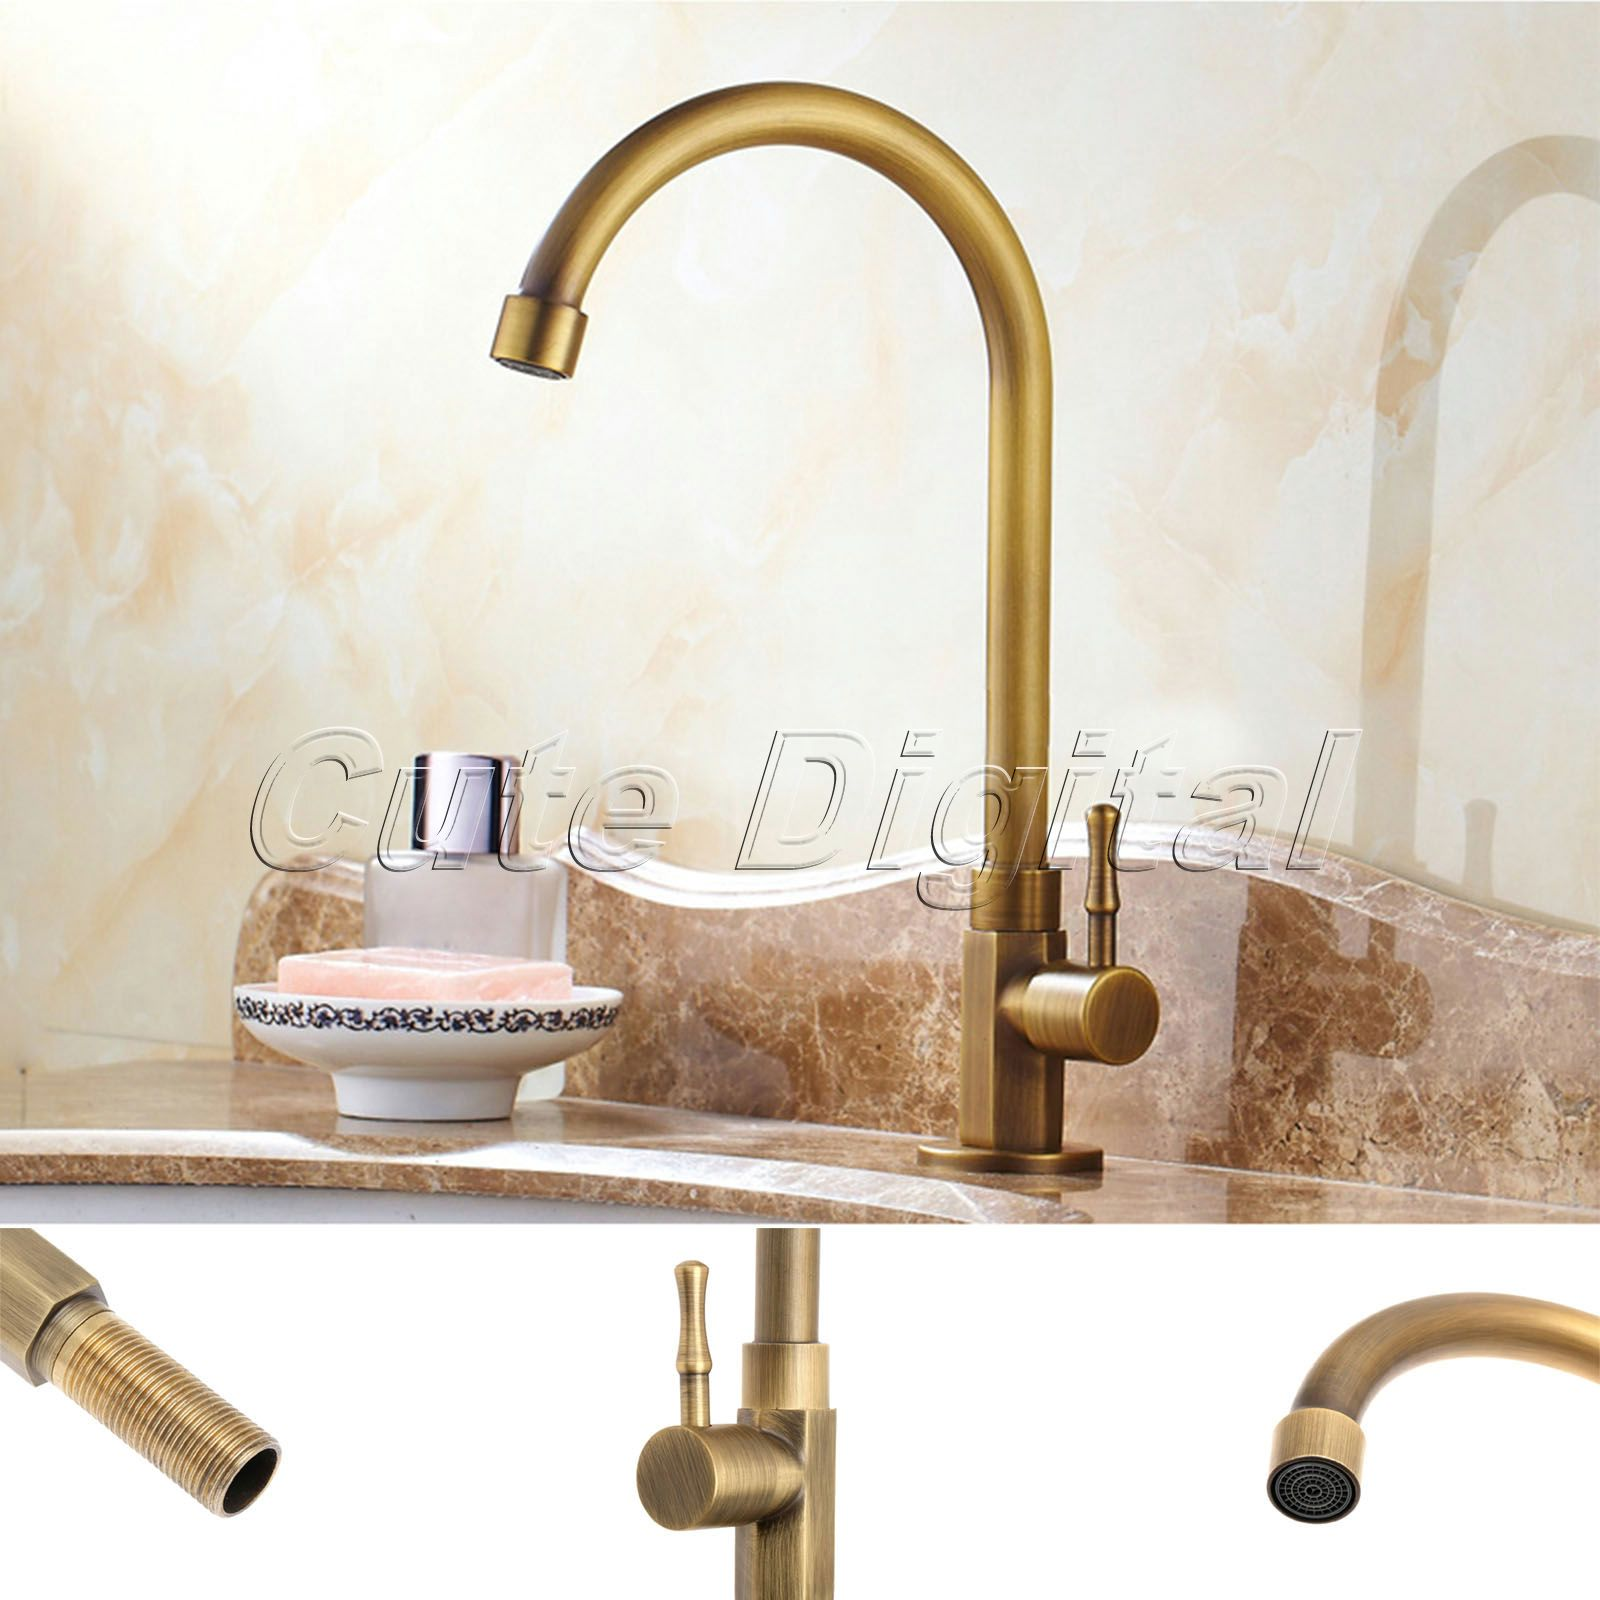 Antique brass luxury bathroom sink faucet single handle swivel spout kitchen faucets vessel sink mixer water tap basin faucets in basin faucets from home